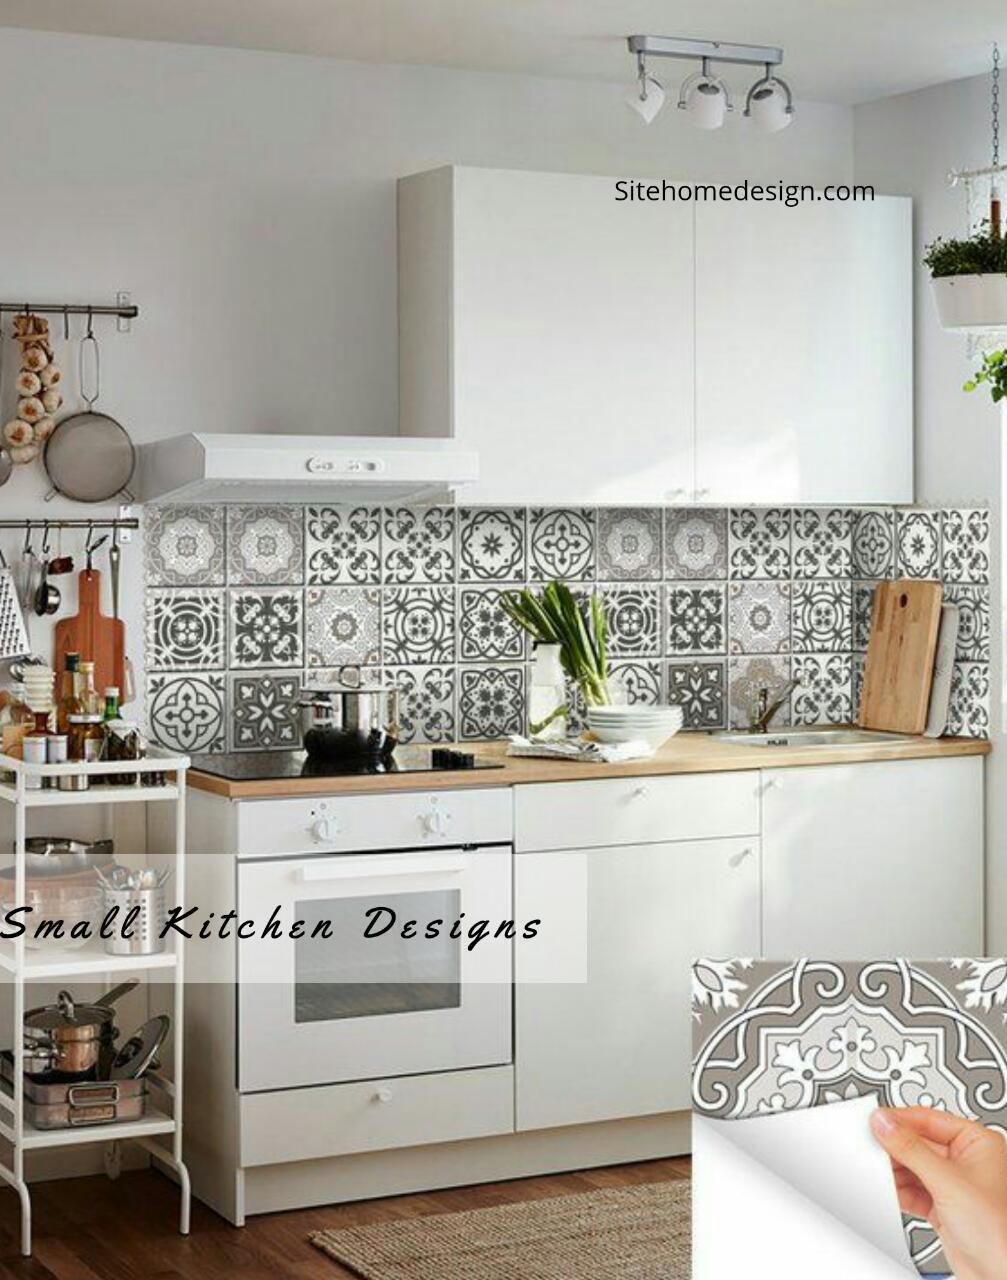 10 Designs Perfect For Your Small Kitchen Kitchen Decals Bathroom Tile Stickers Small Kitchen